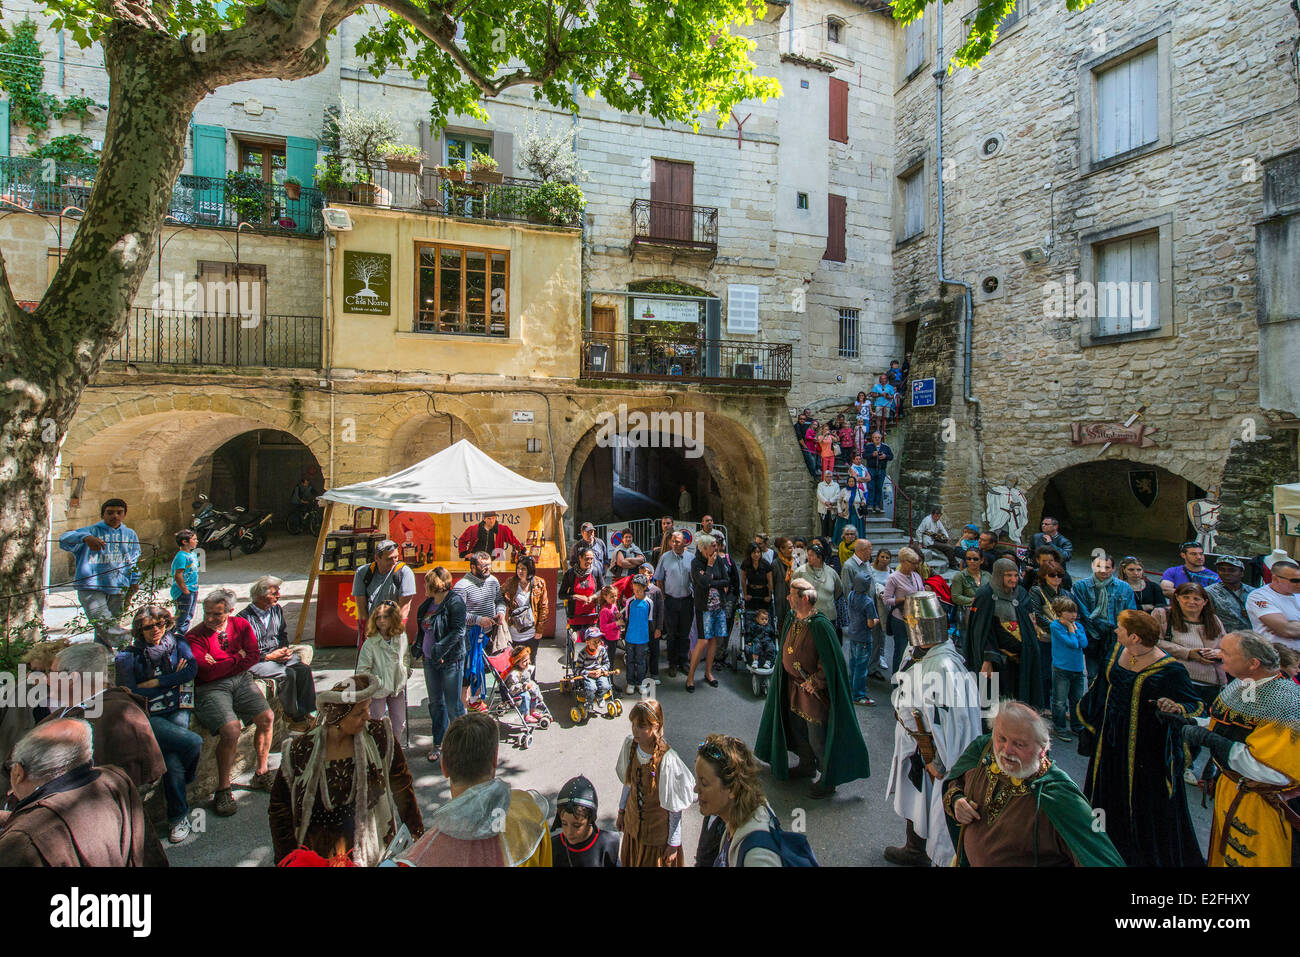 France, Gard, Sommieres, Marketplace, arches of the Roman inhabited bridge of 1st background century, medieval party - Stock Image